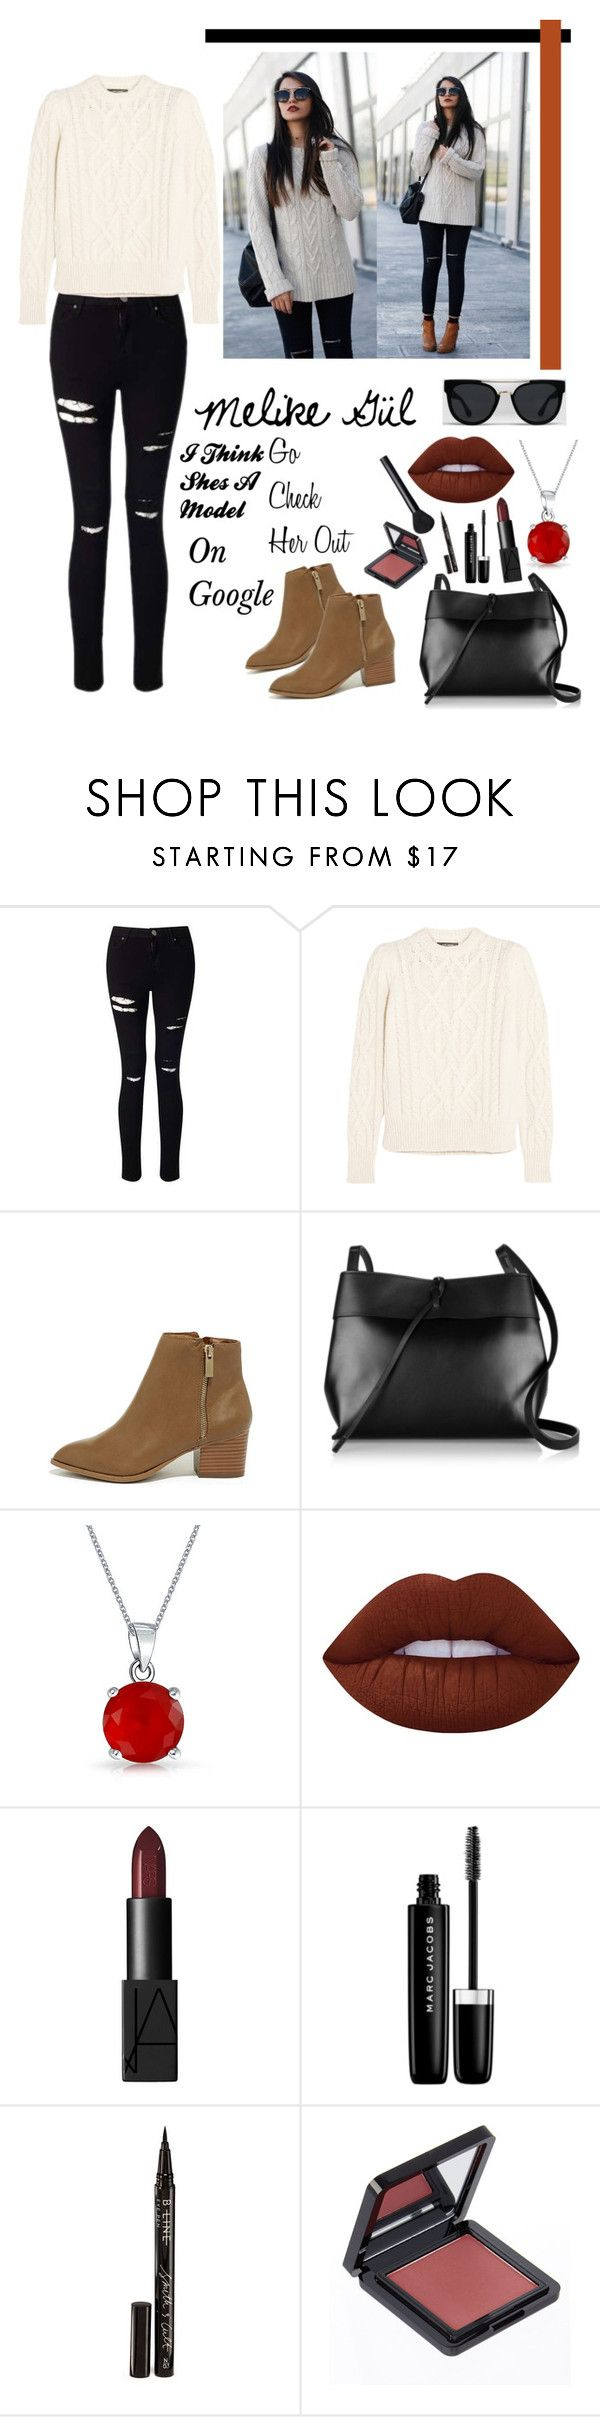 """""""Melike Gül"""" by sehr-lohsar ❤ liked on Polyvore featuring Miss Selfridge, Isabel Marant, Bonnibel, Ray-Ban, Kara, Bling Jewelry, Lime Crime, NARS Cosmetics, Marc Jacobs and Smith & Cult"""